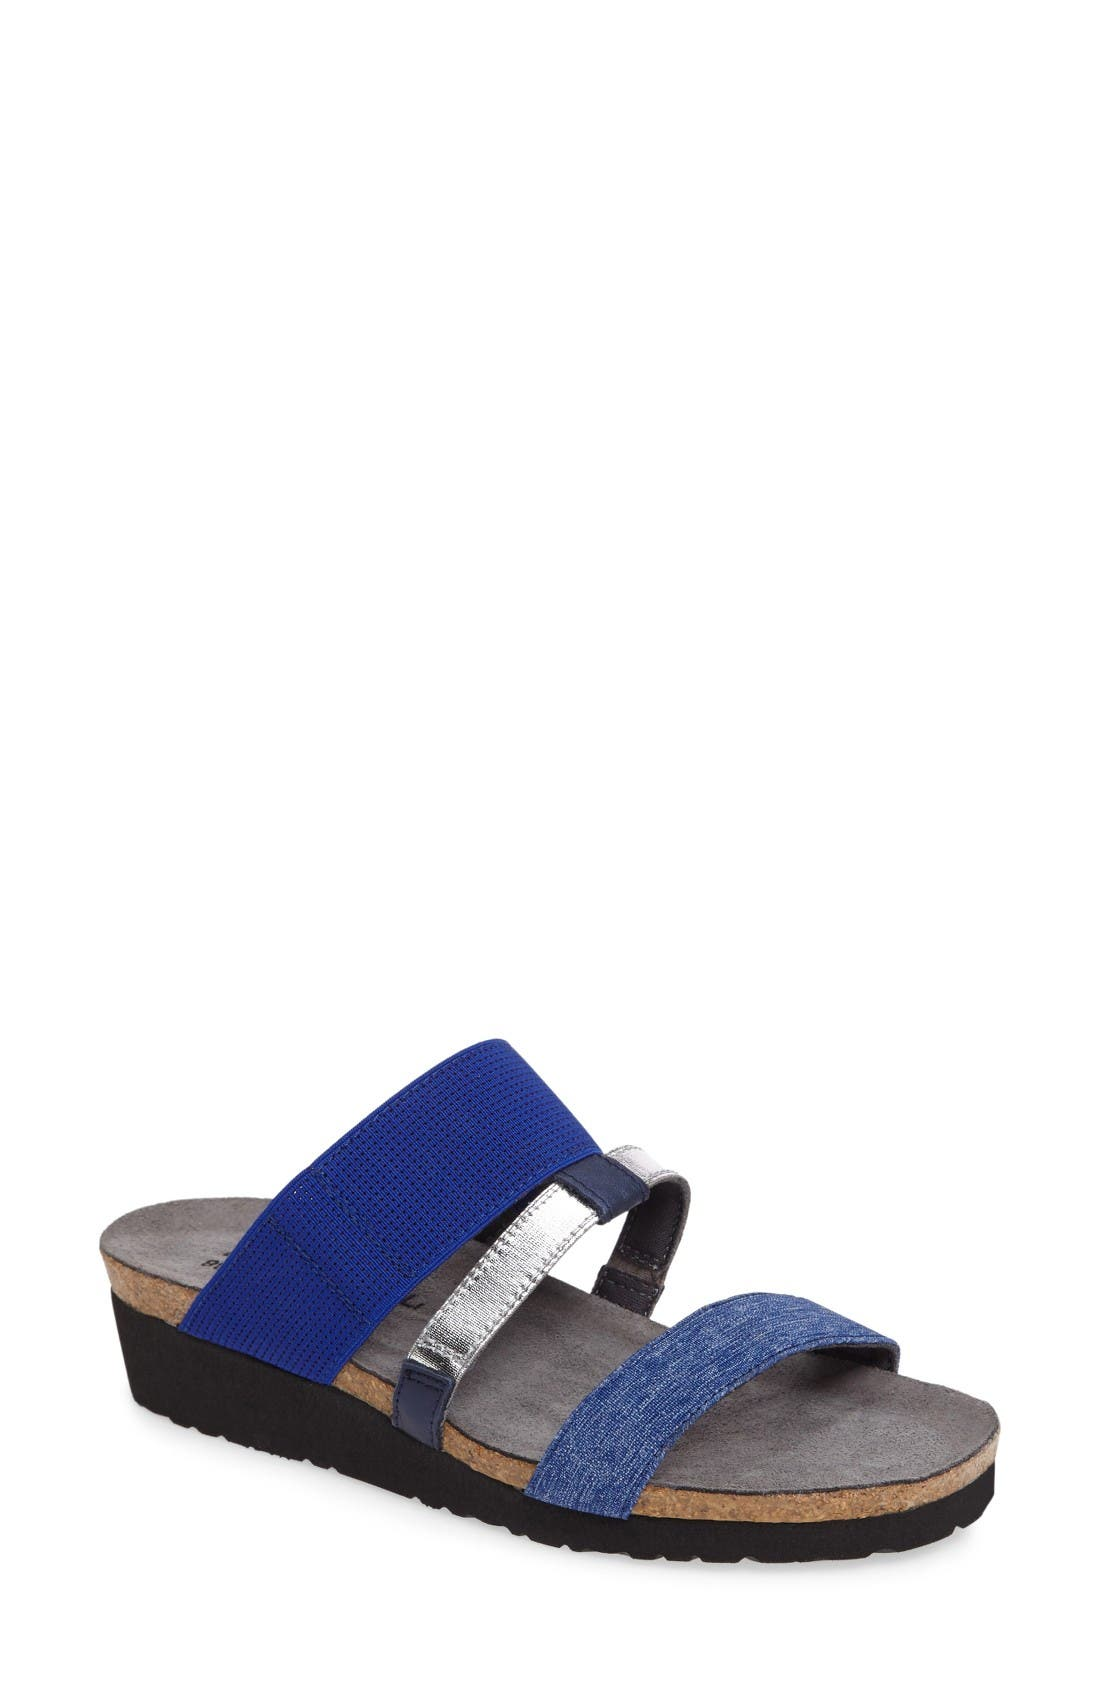 Main Image - Naot 'Brenda' Slip-On Sandal (Women)